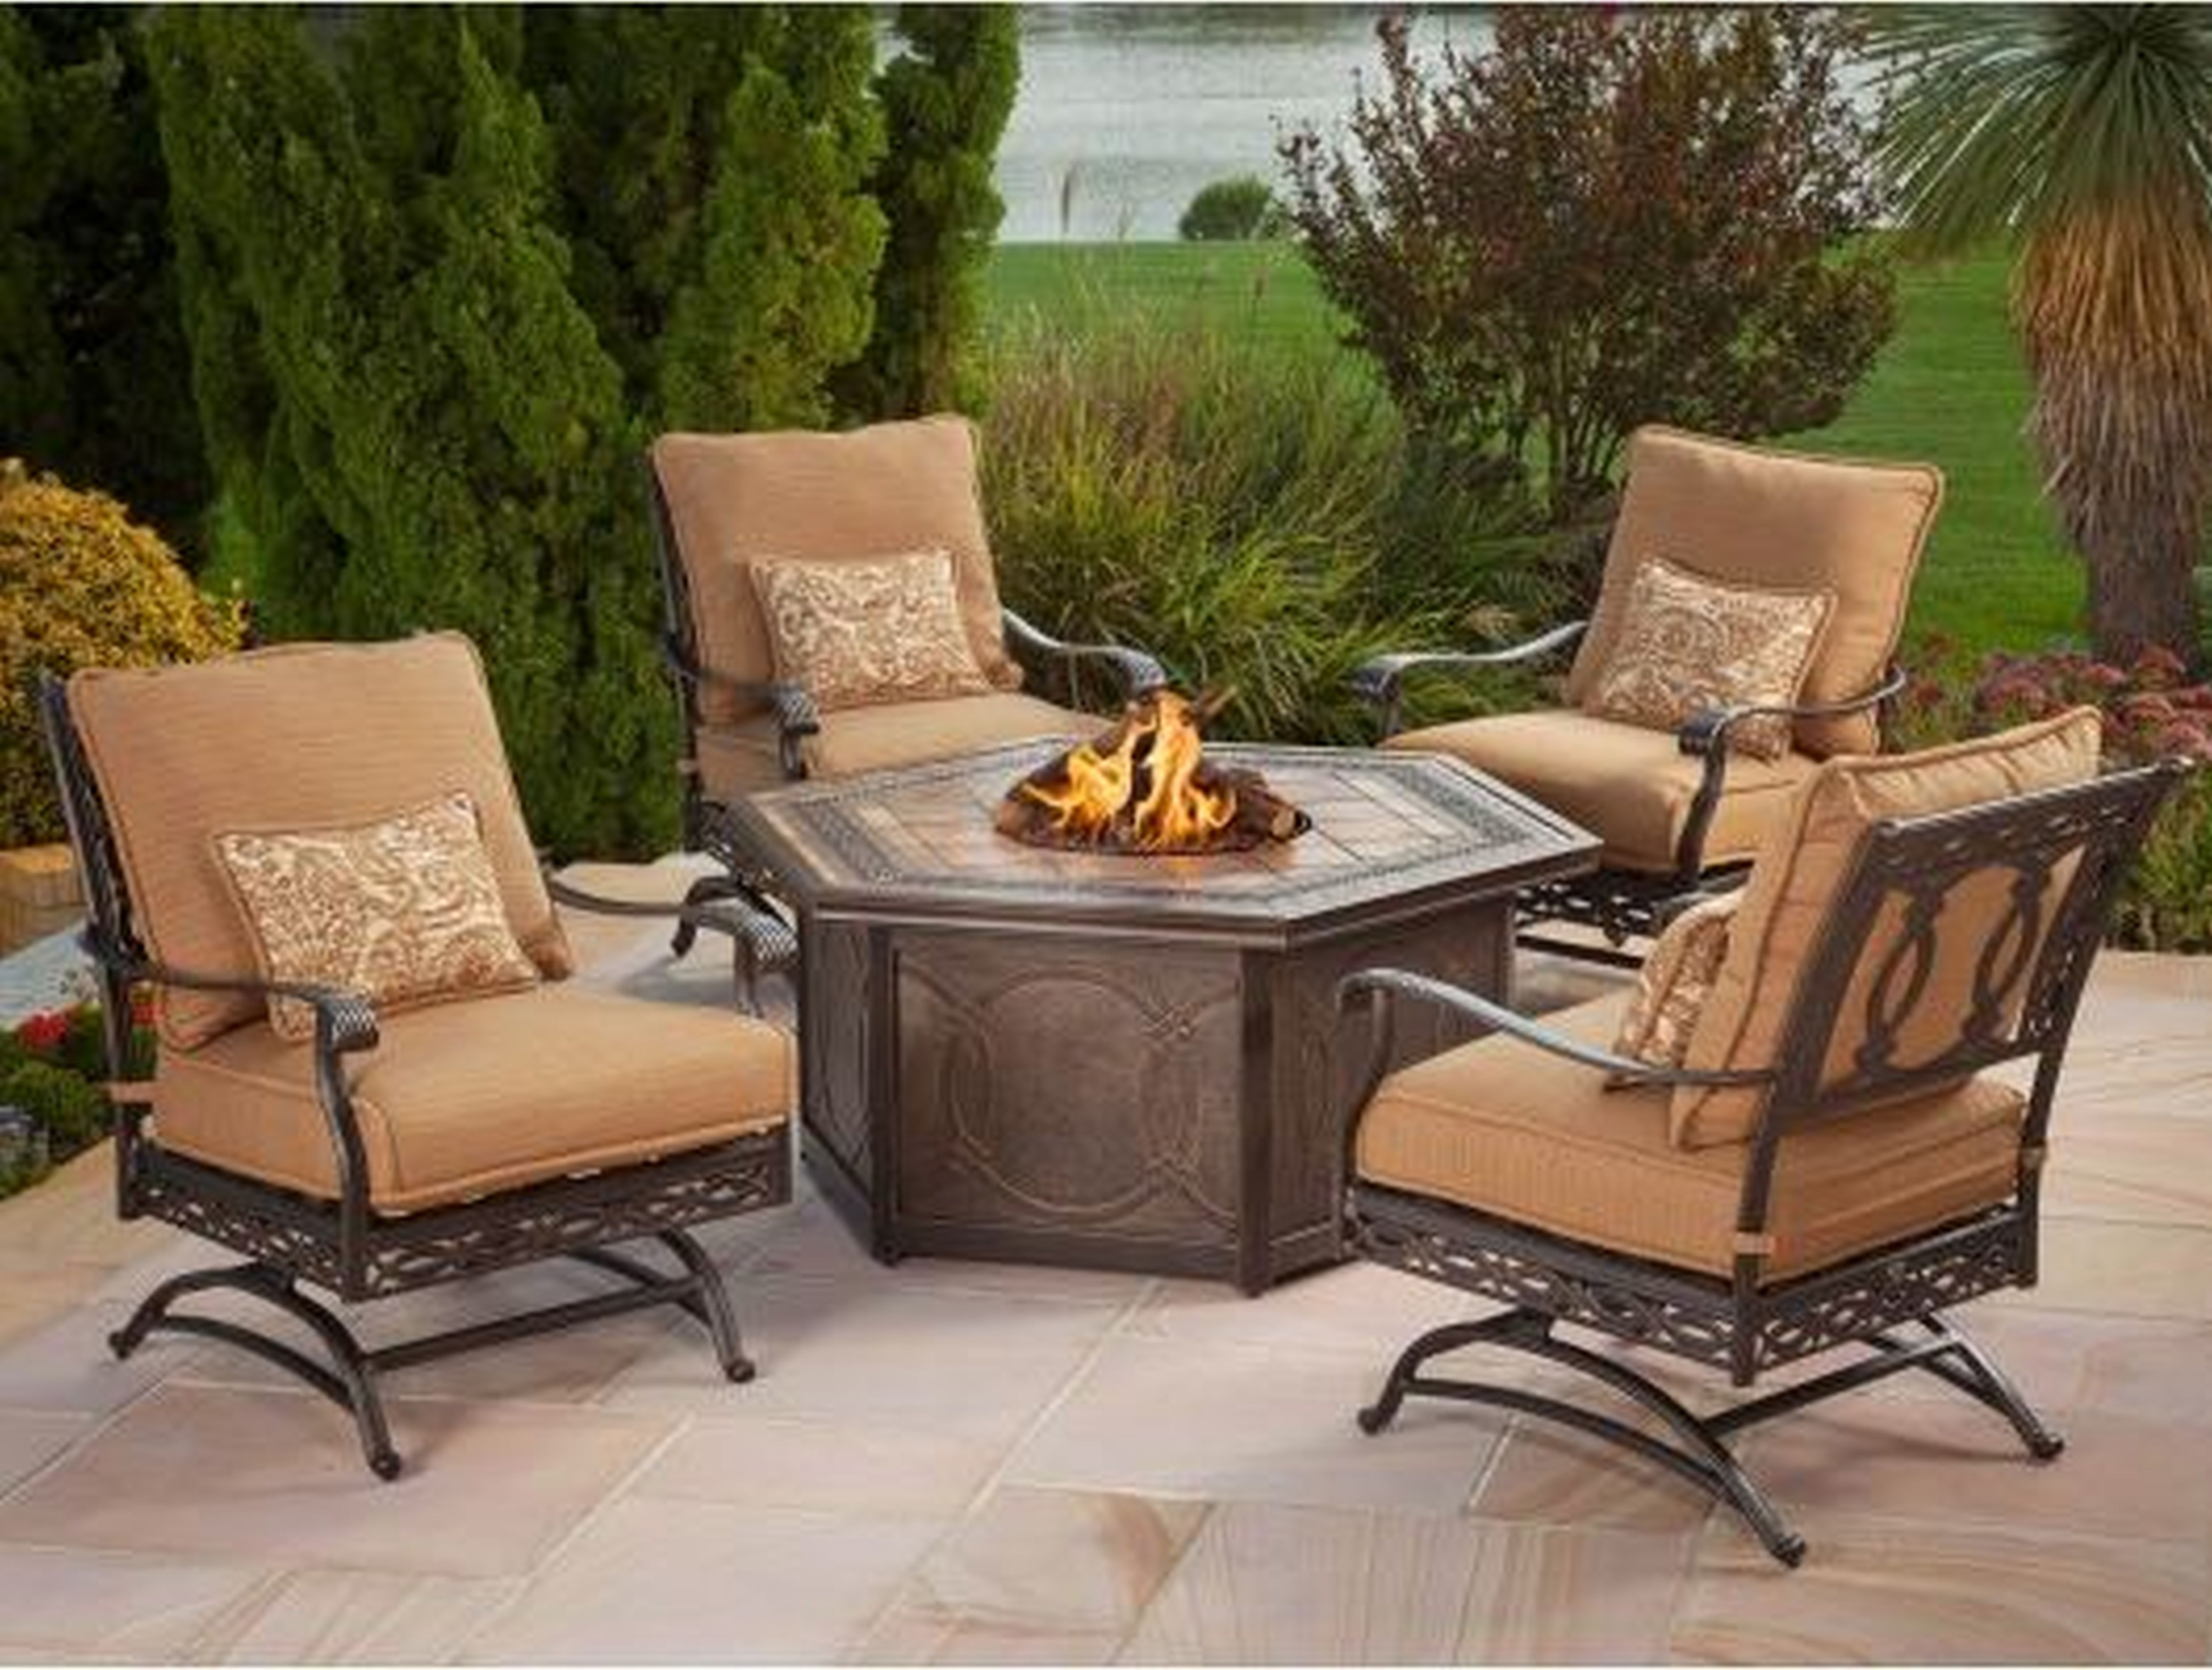 Patio Set Clearance Home Depot Patio Furniture Clearance Patio Fire Pit  As Furniture Covers